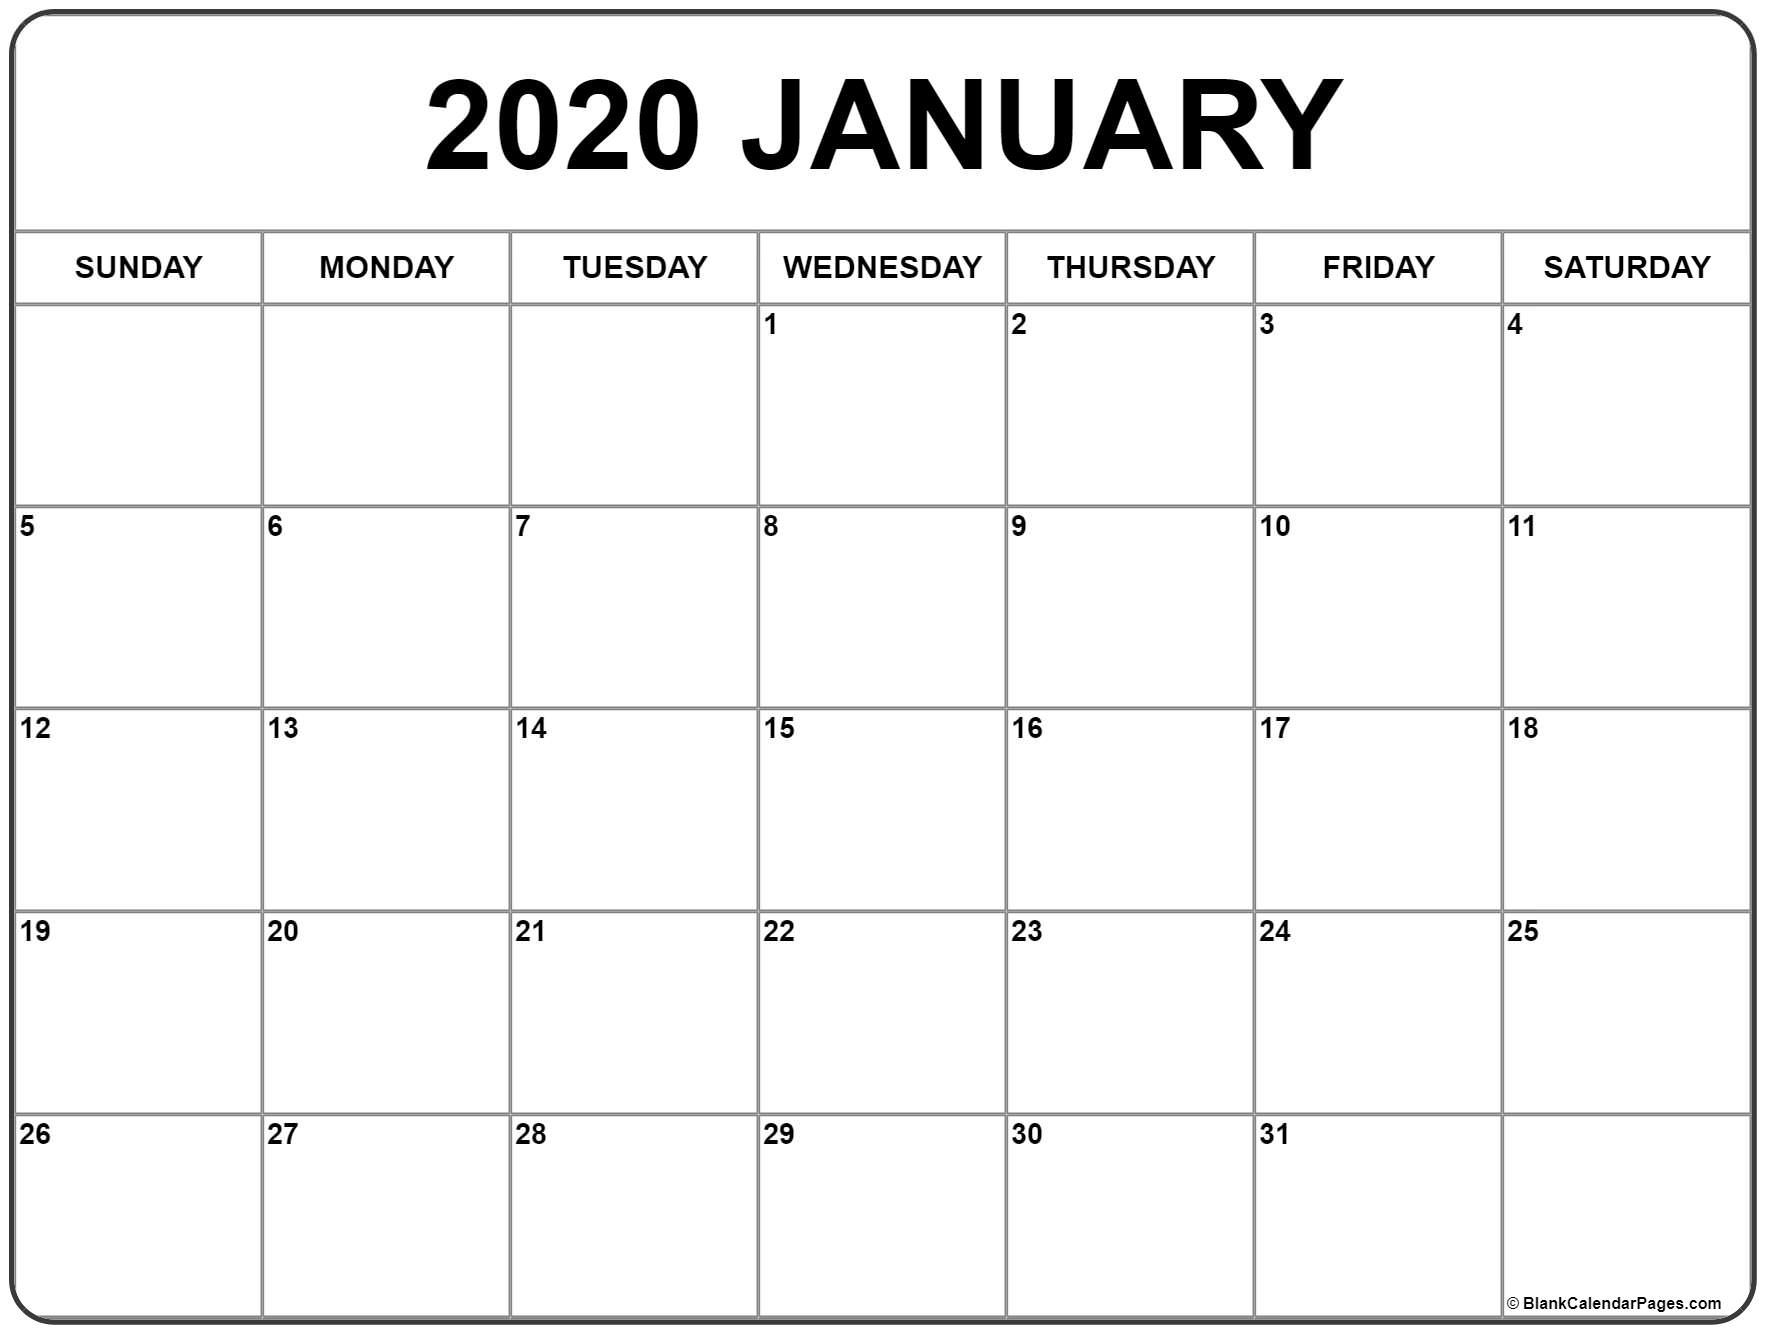 January 2020 Calendar | Free Printable Monthly Calendars intended for Monthly Calendar 2020 Printable